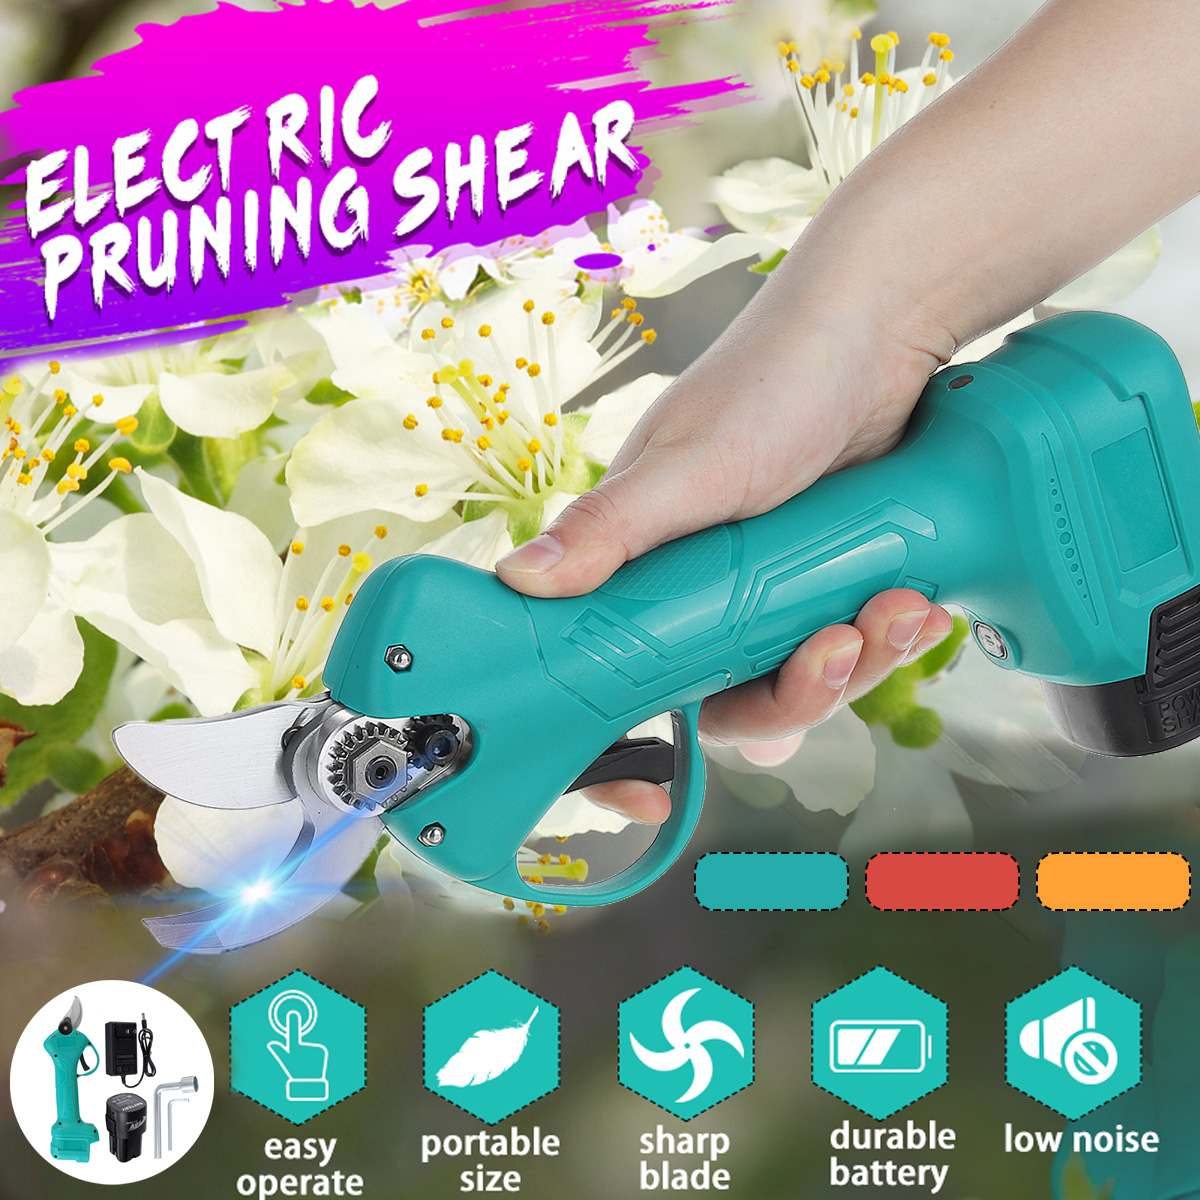 98V Cordless Electric Pruning Shears Rechargeable Professional Power Pruner Branches Pruning Tools Scissor with Li-ion Battery